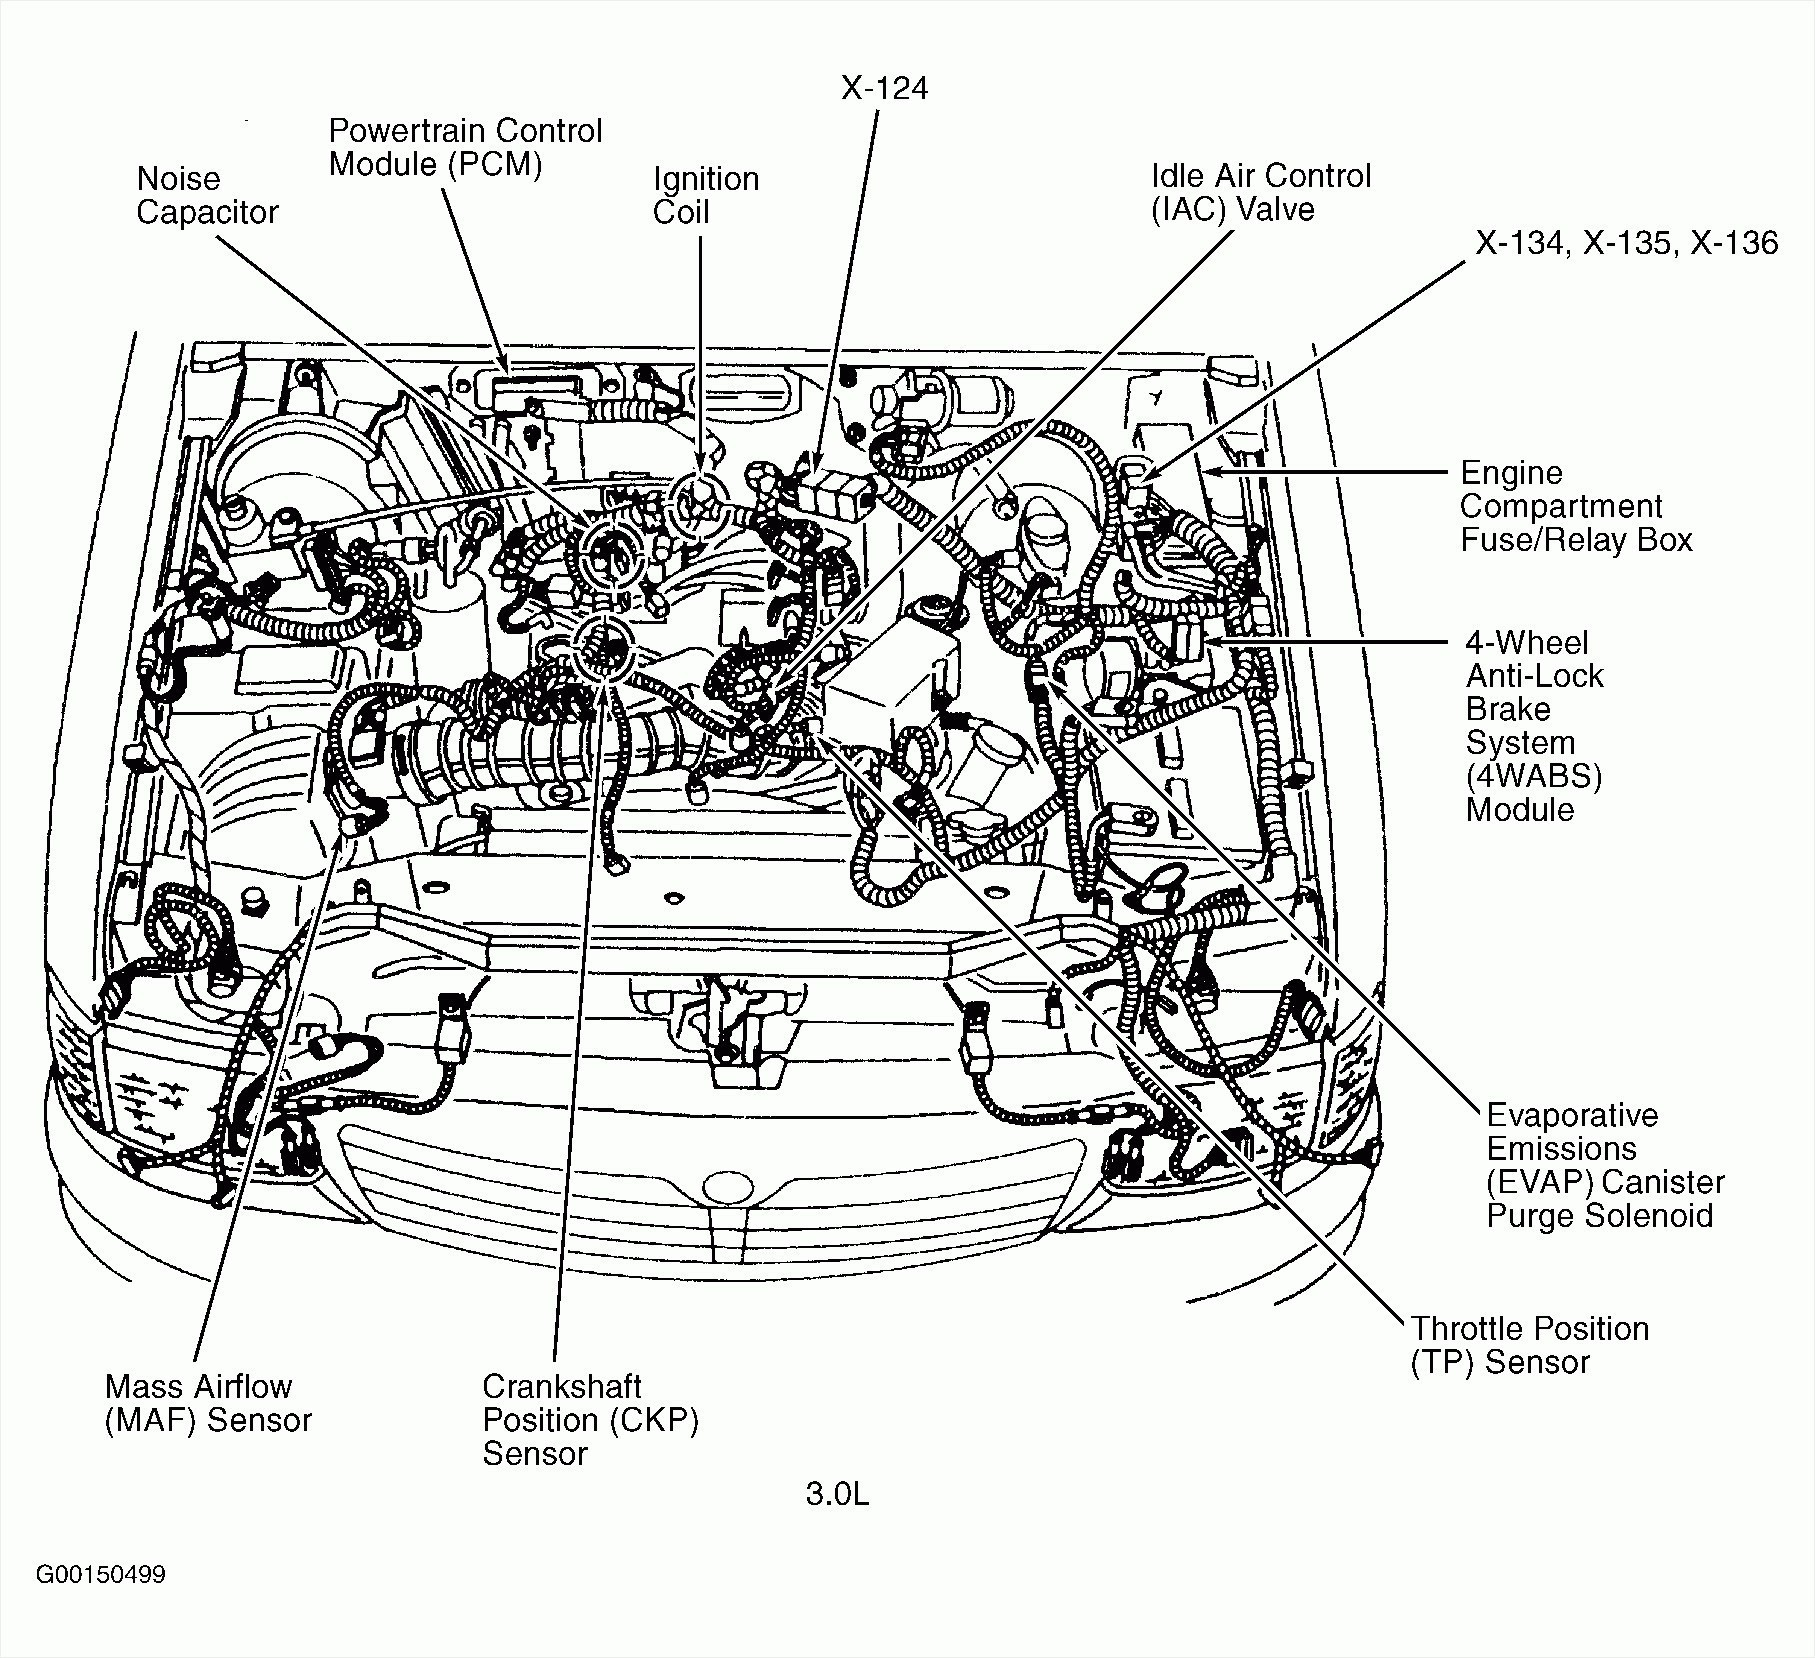 2001 Dodge Caravan Engine Diagram 97 Rav4 Engine Diagram Of 2001 Dodge Caravan Engine Diagram